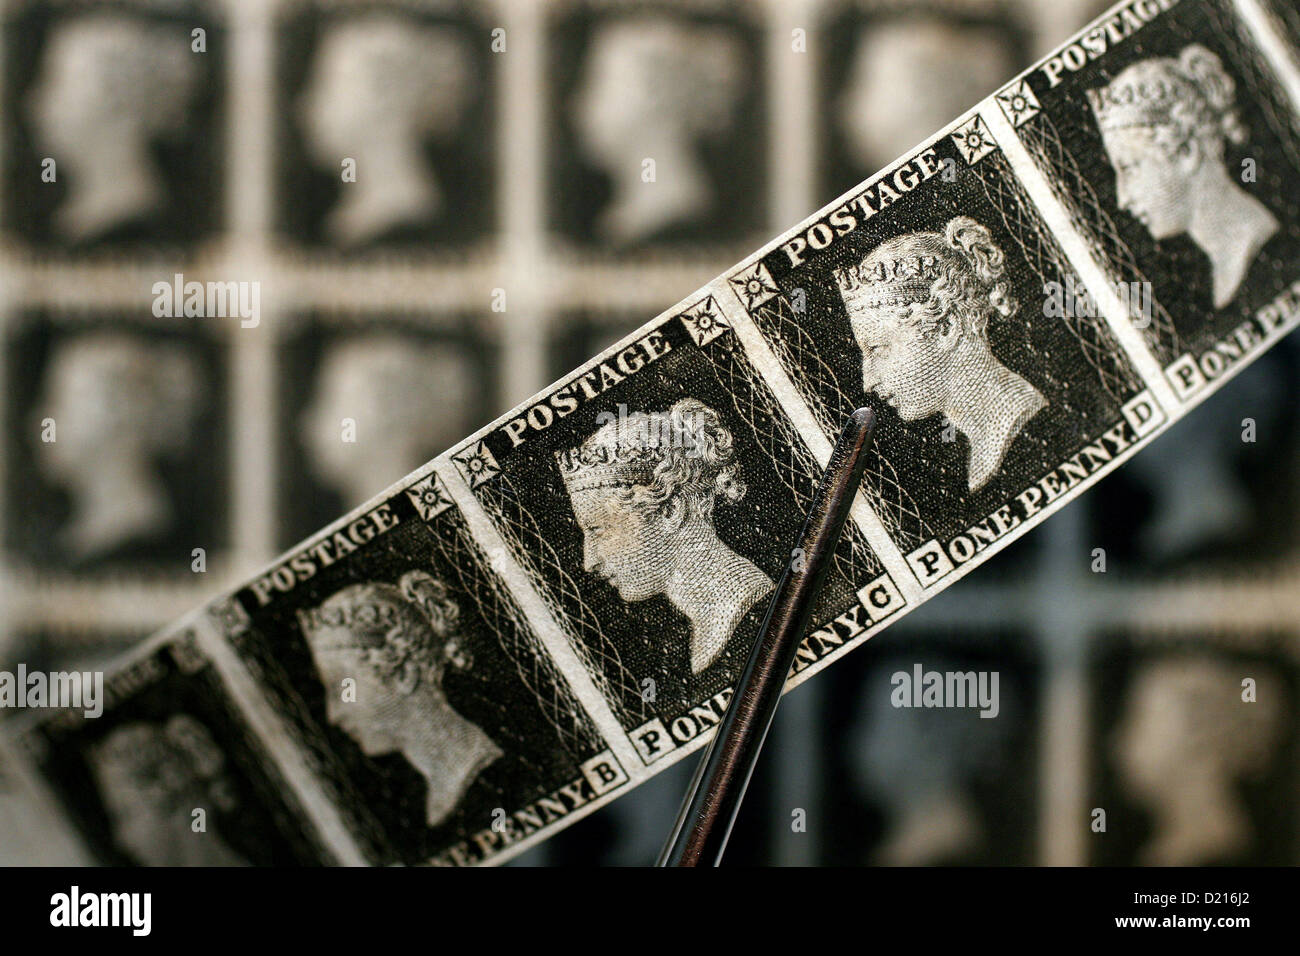 Rare collection of mint condition Penny Blacks dated 1841. The British Stamps were expected to fetch up to £2 - Stock Image